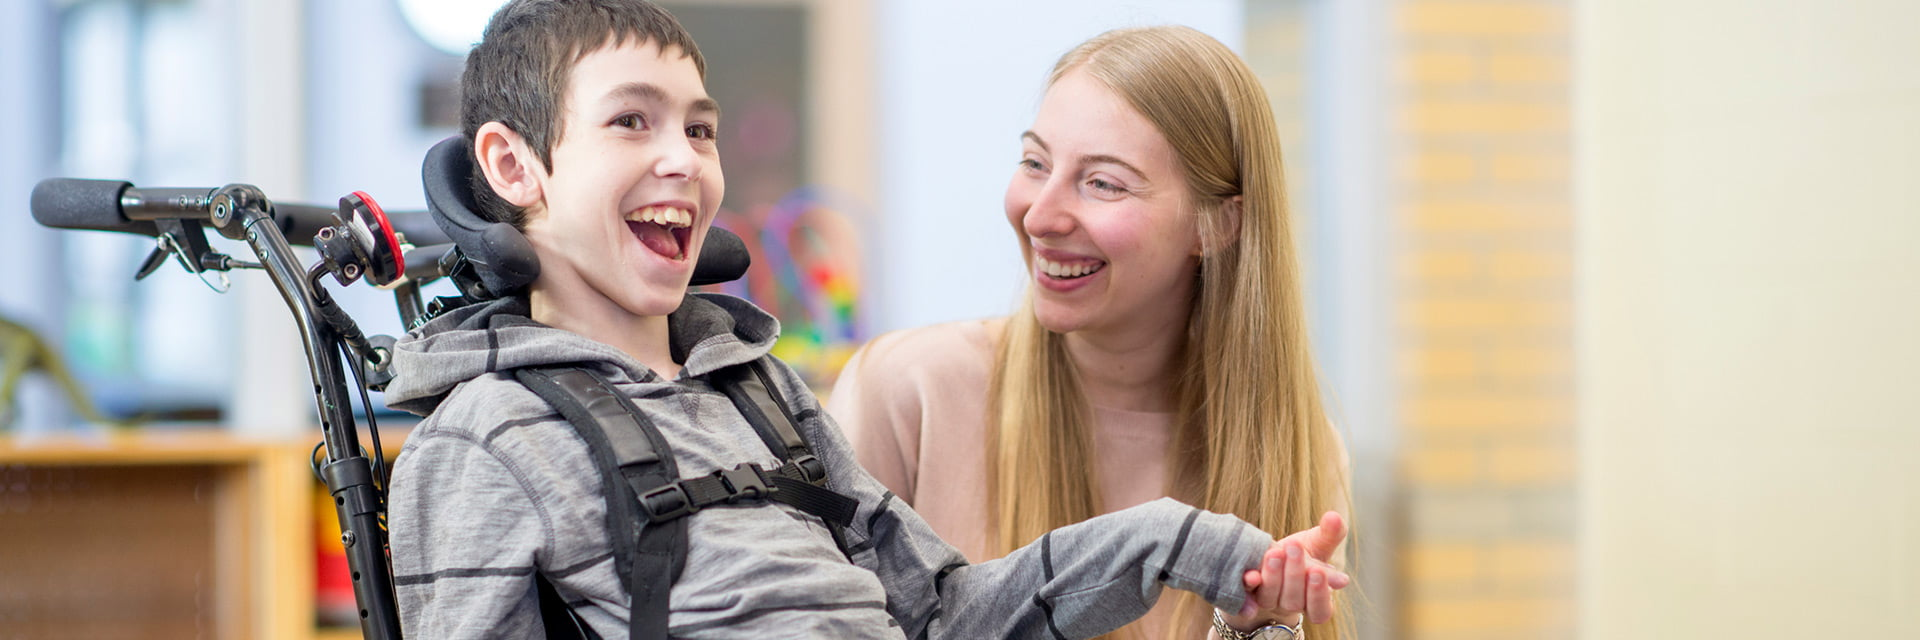 Child with a disability using a wheelchair with a female carer